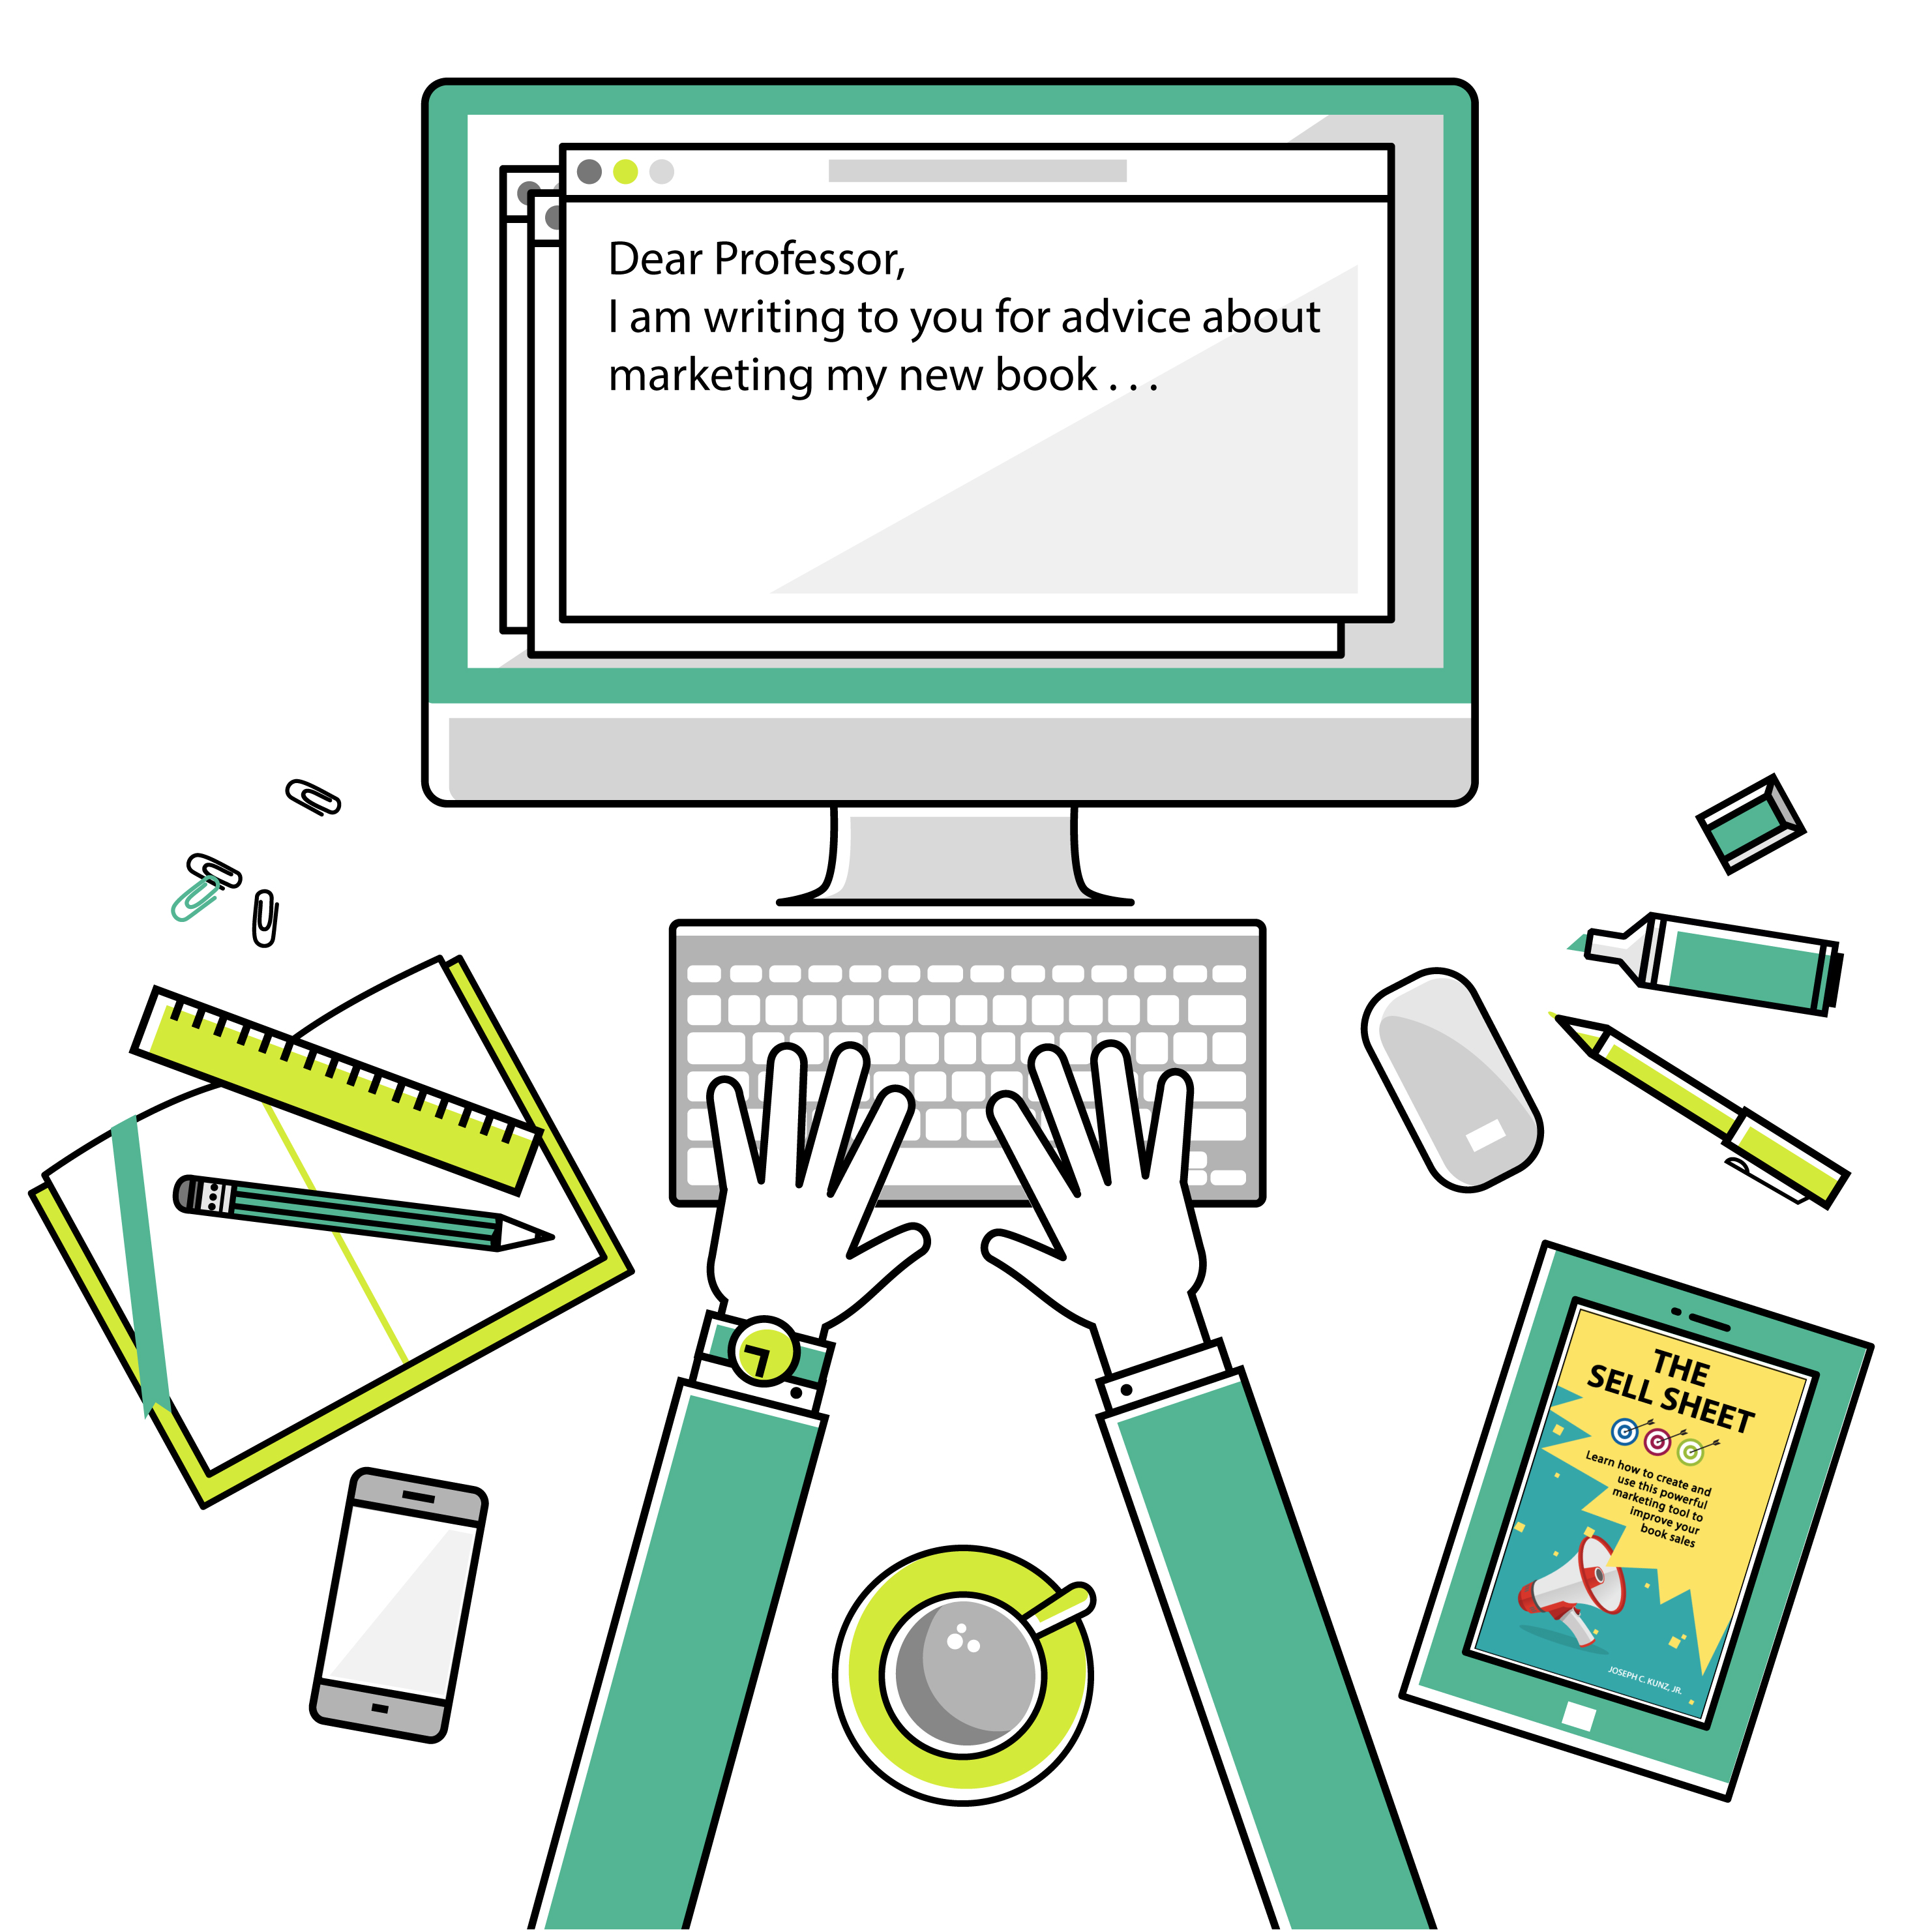 Sell Sheet Worksheet And Questionnaire For Self Publishers